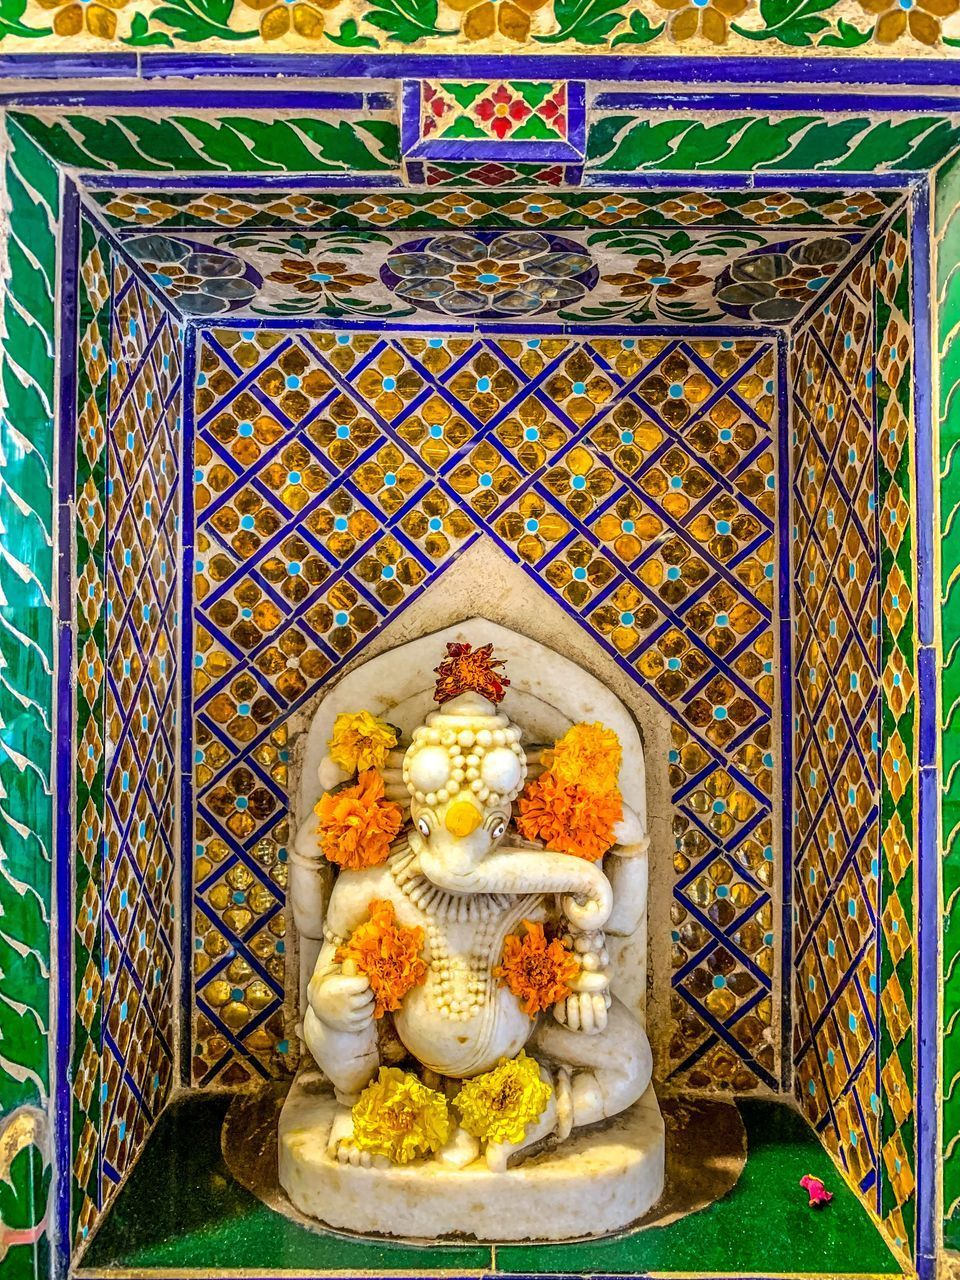 art and craft, religion, representation, belief, spirituality, no people, place of worship, indoors, creativity, architecture, human representation, built structure, sculpture, statue, multi colored, craft, pattern, altar, ornate